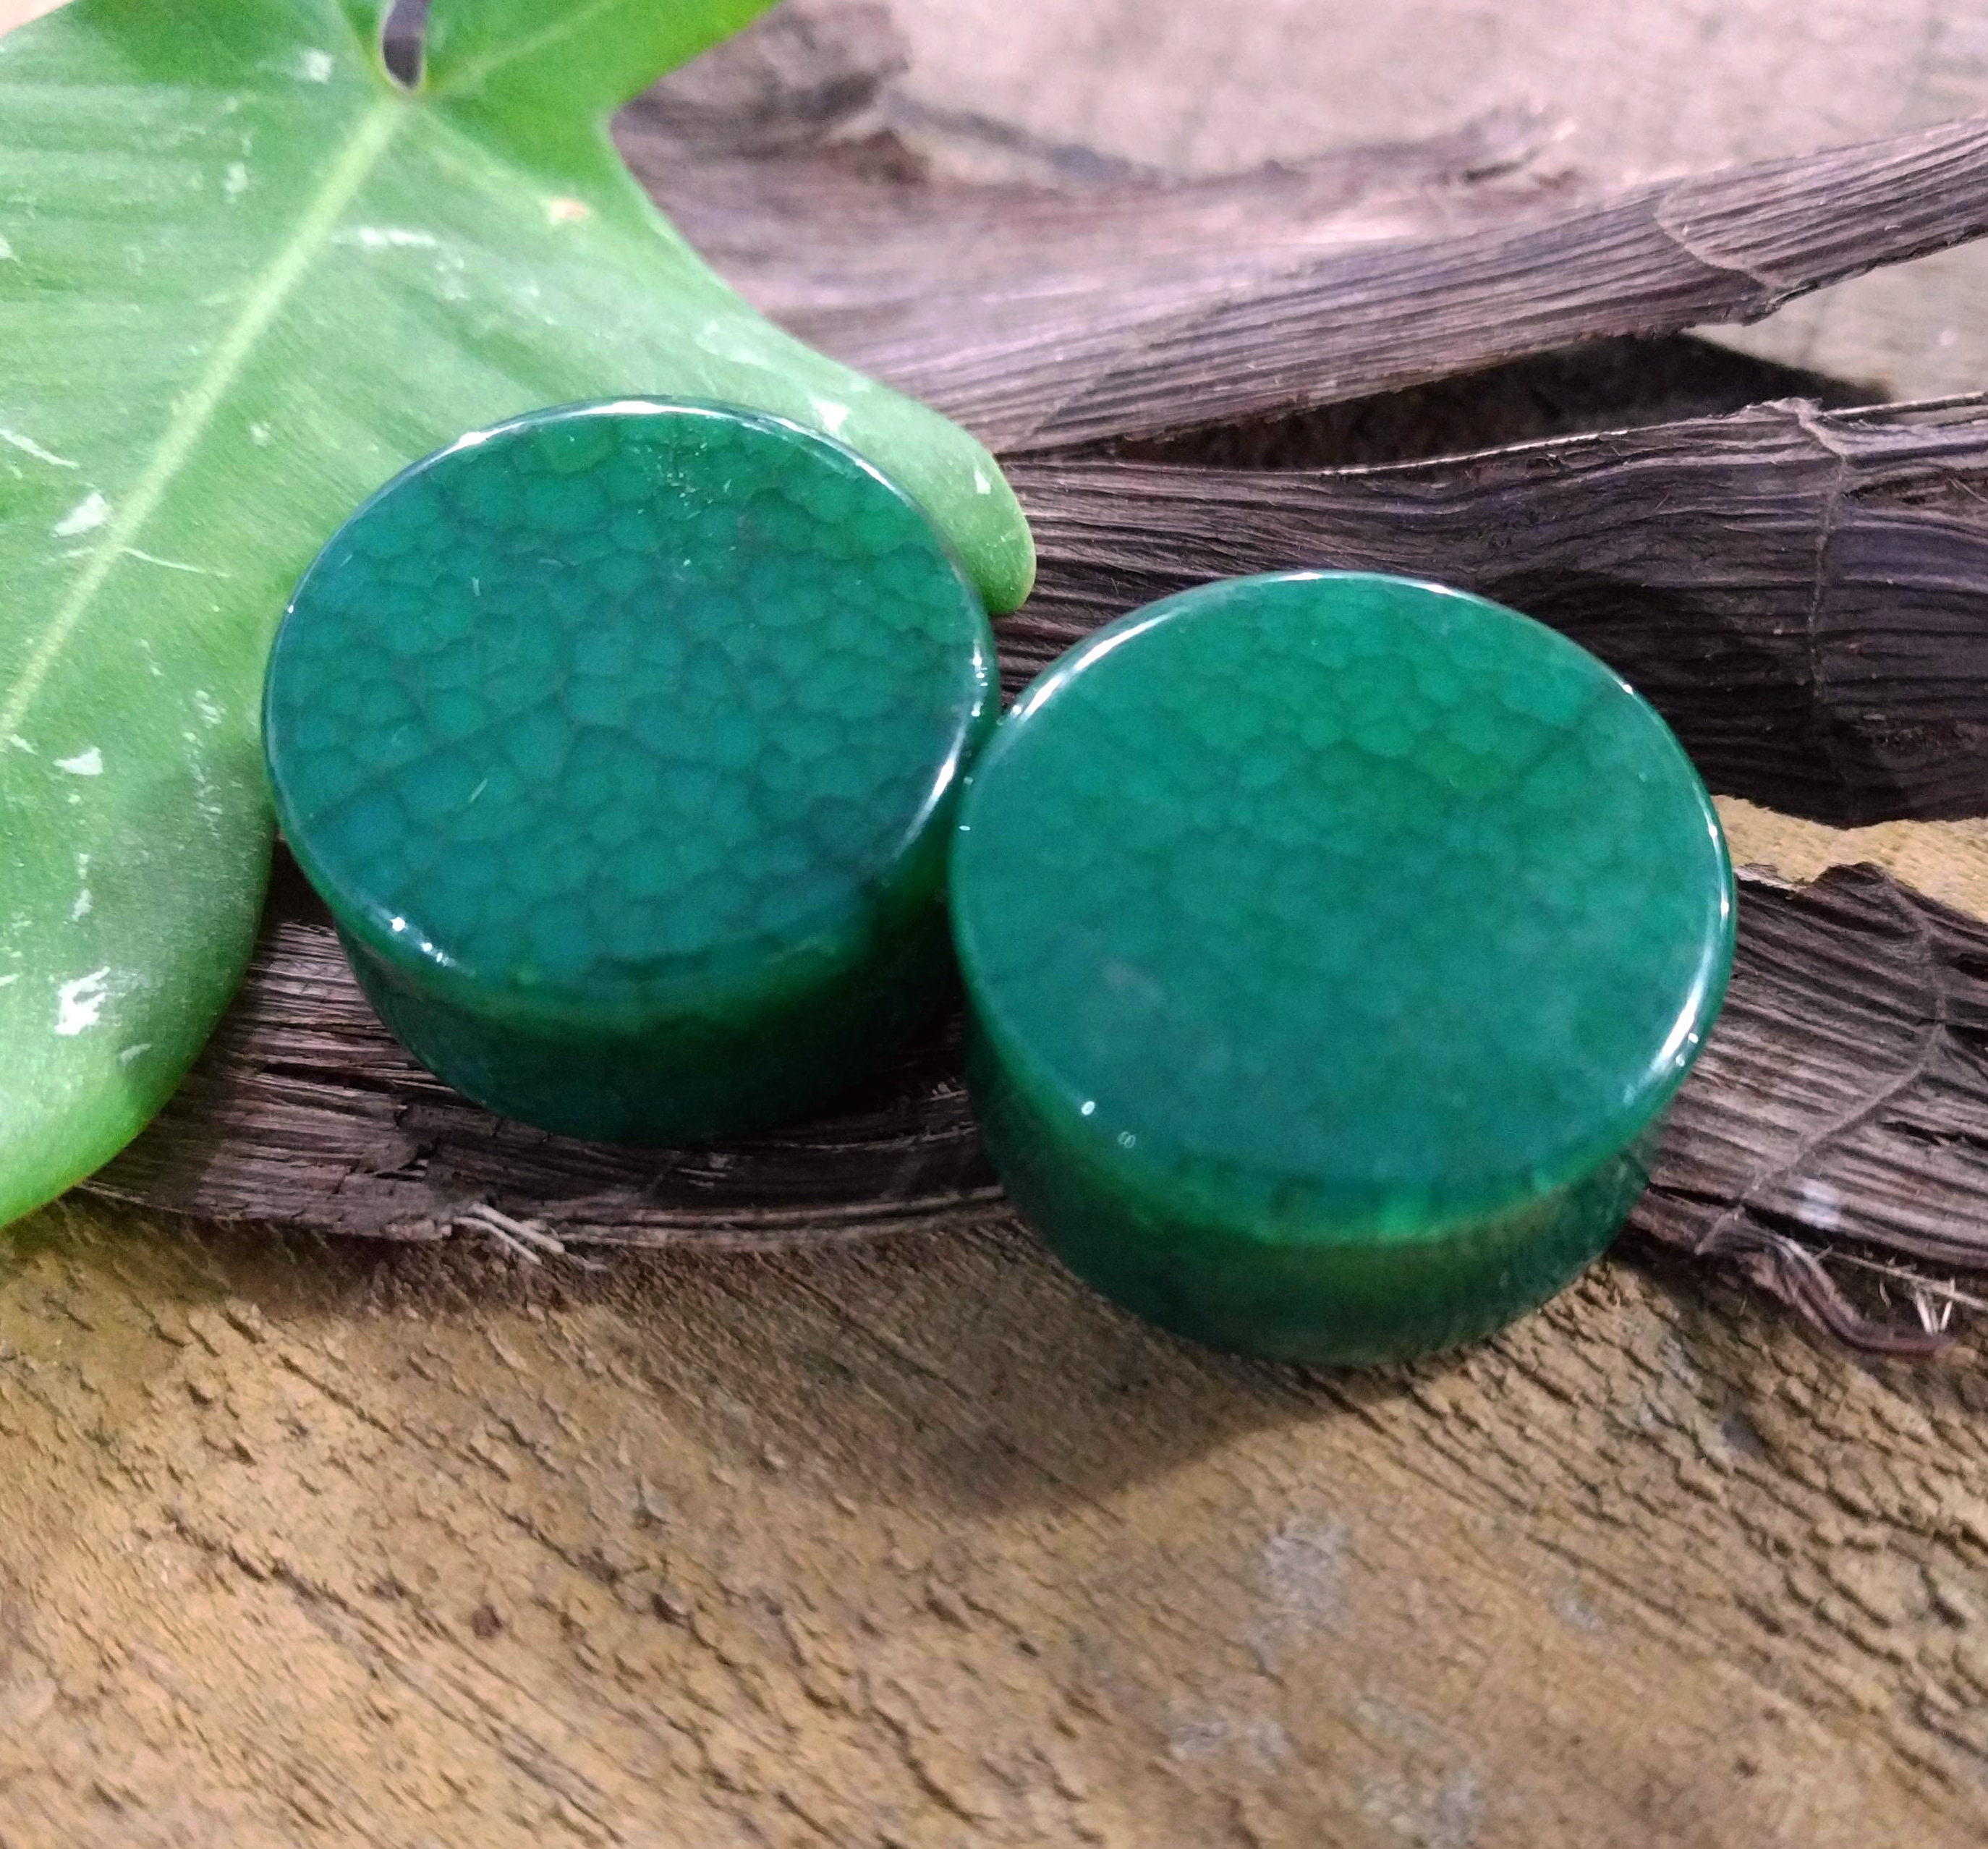 Green Marble Stripe Double Flared Ear PlugsSold as Pairs